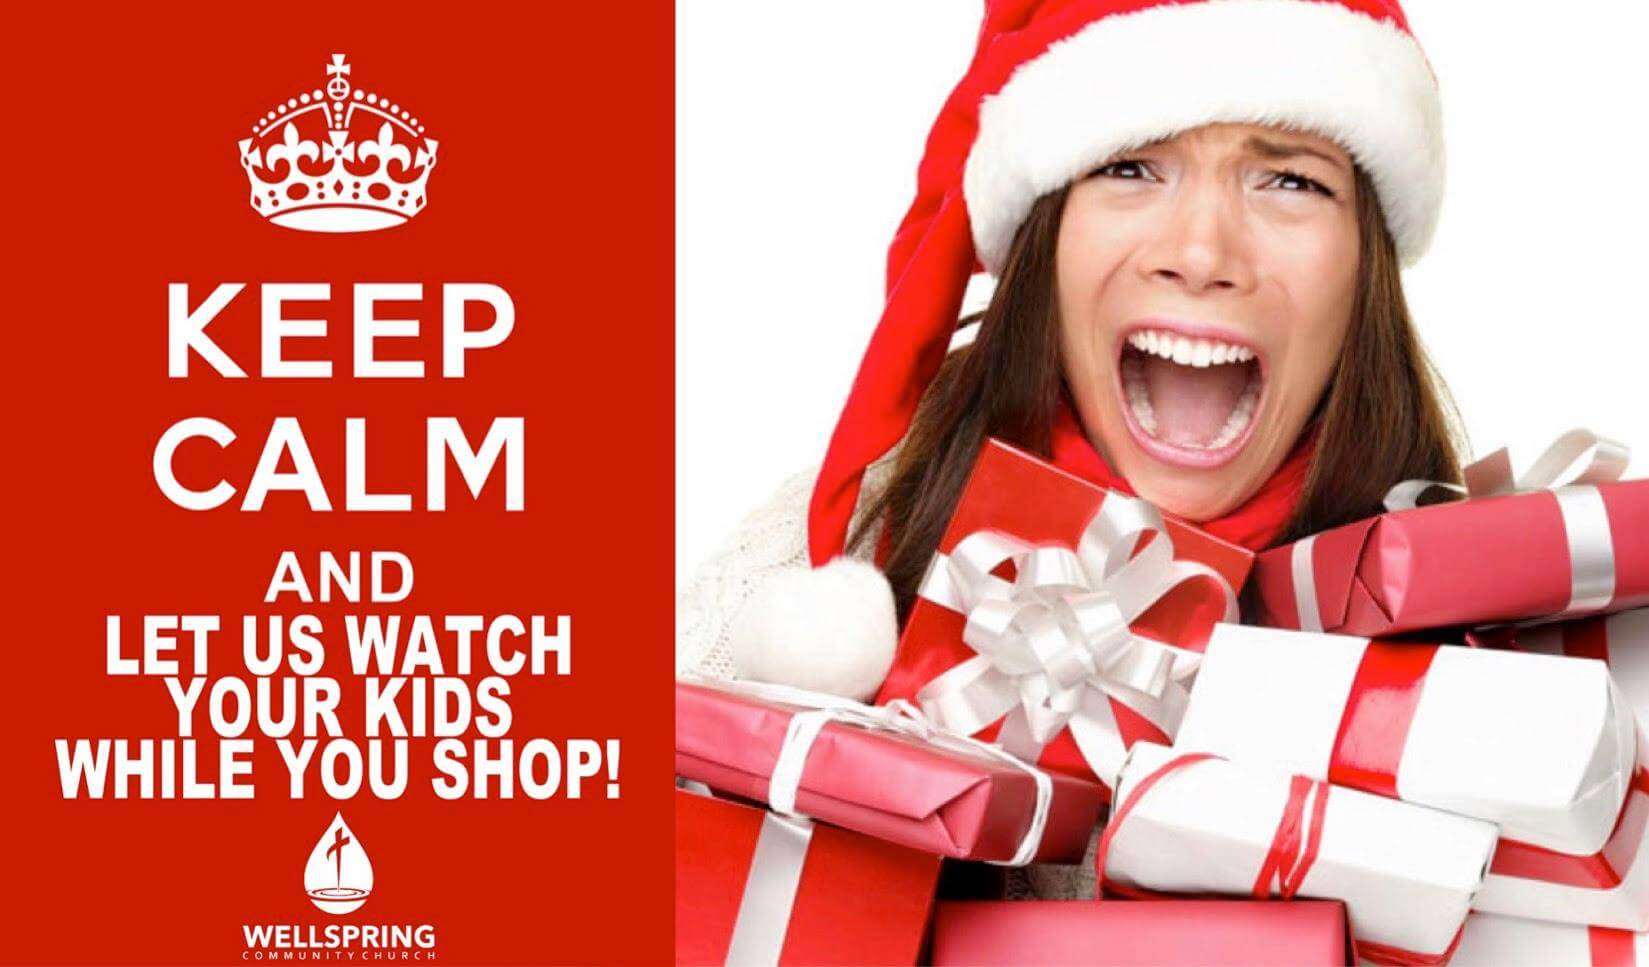 Keep Calm and let us watch you kids while you shop!